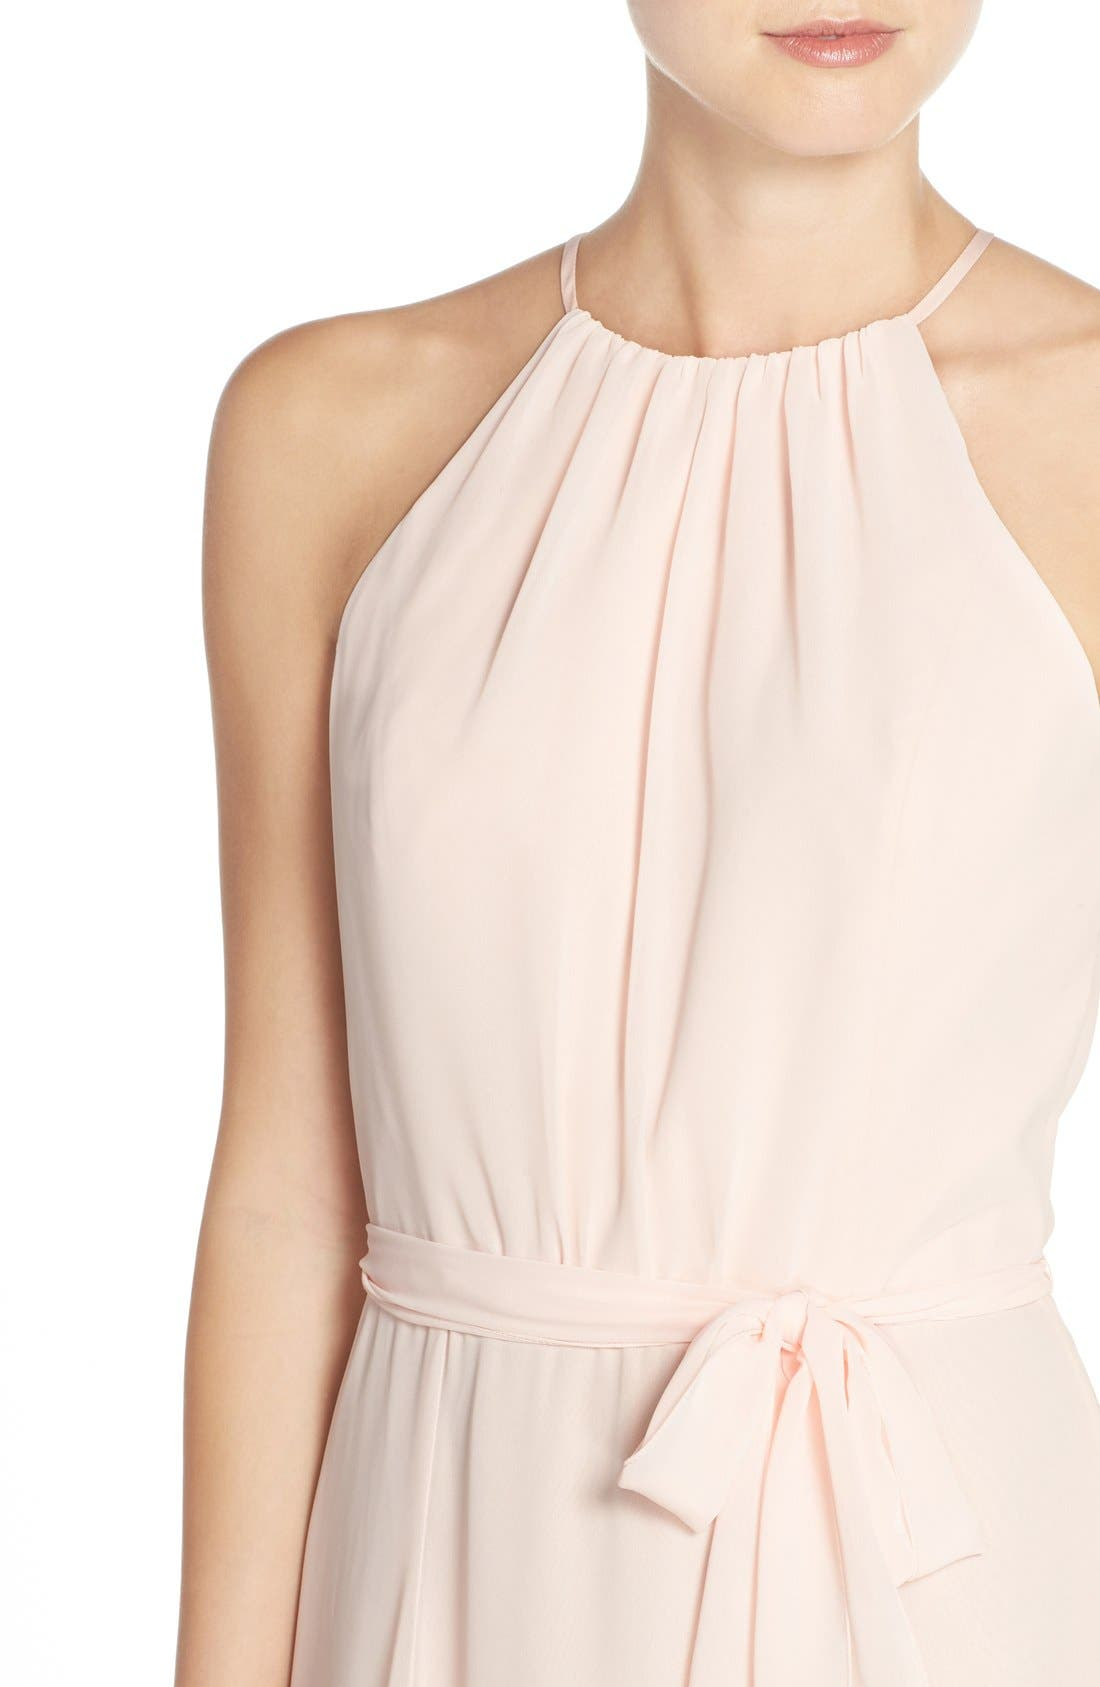 'Delaney' Belted A-Line Chiffon Halter Dress,                             Alternate thumbnail 4, color,                             Blush